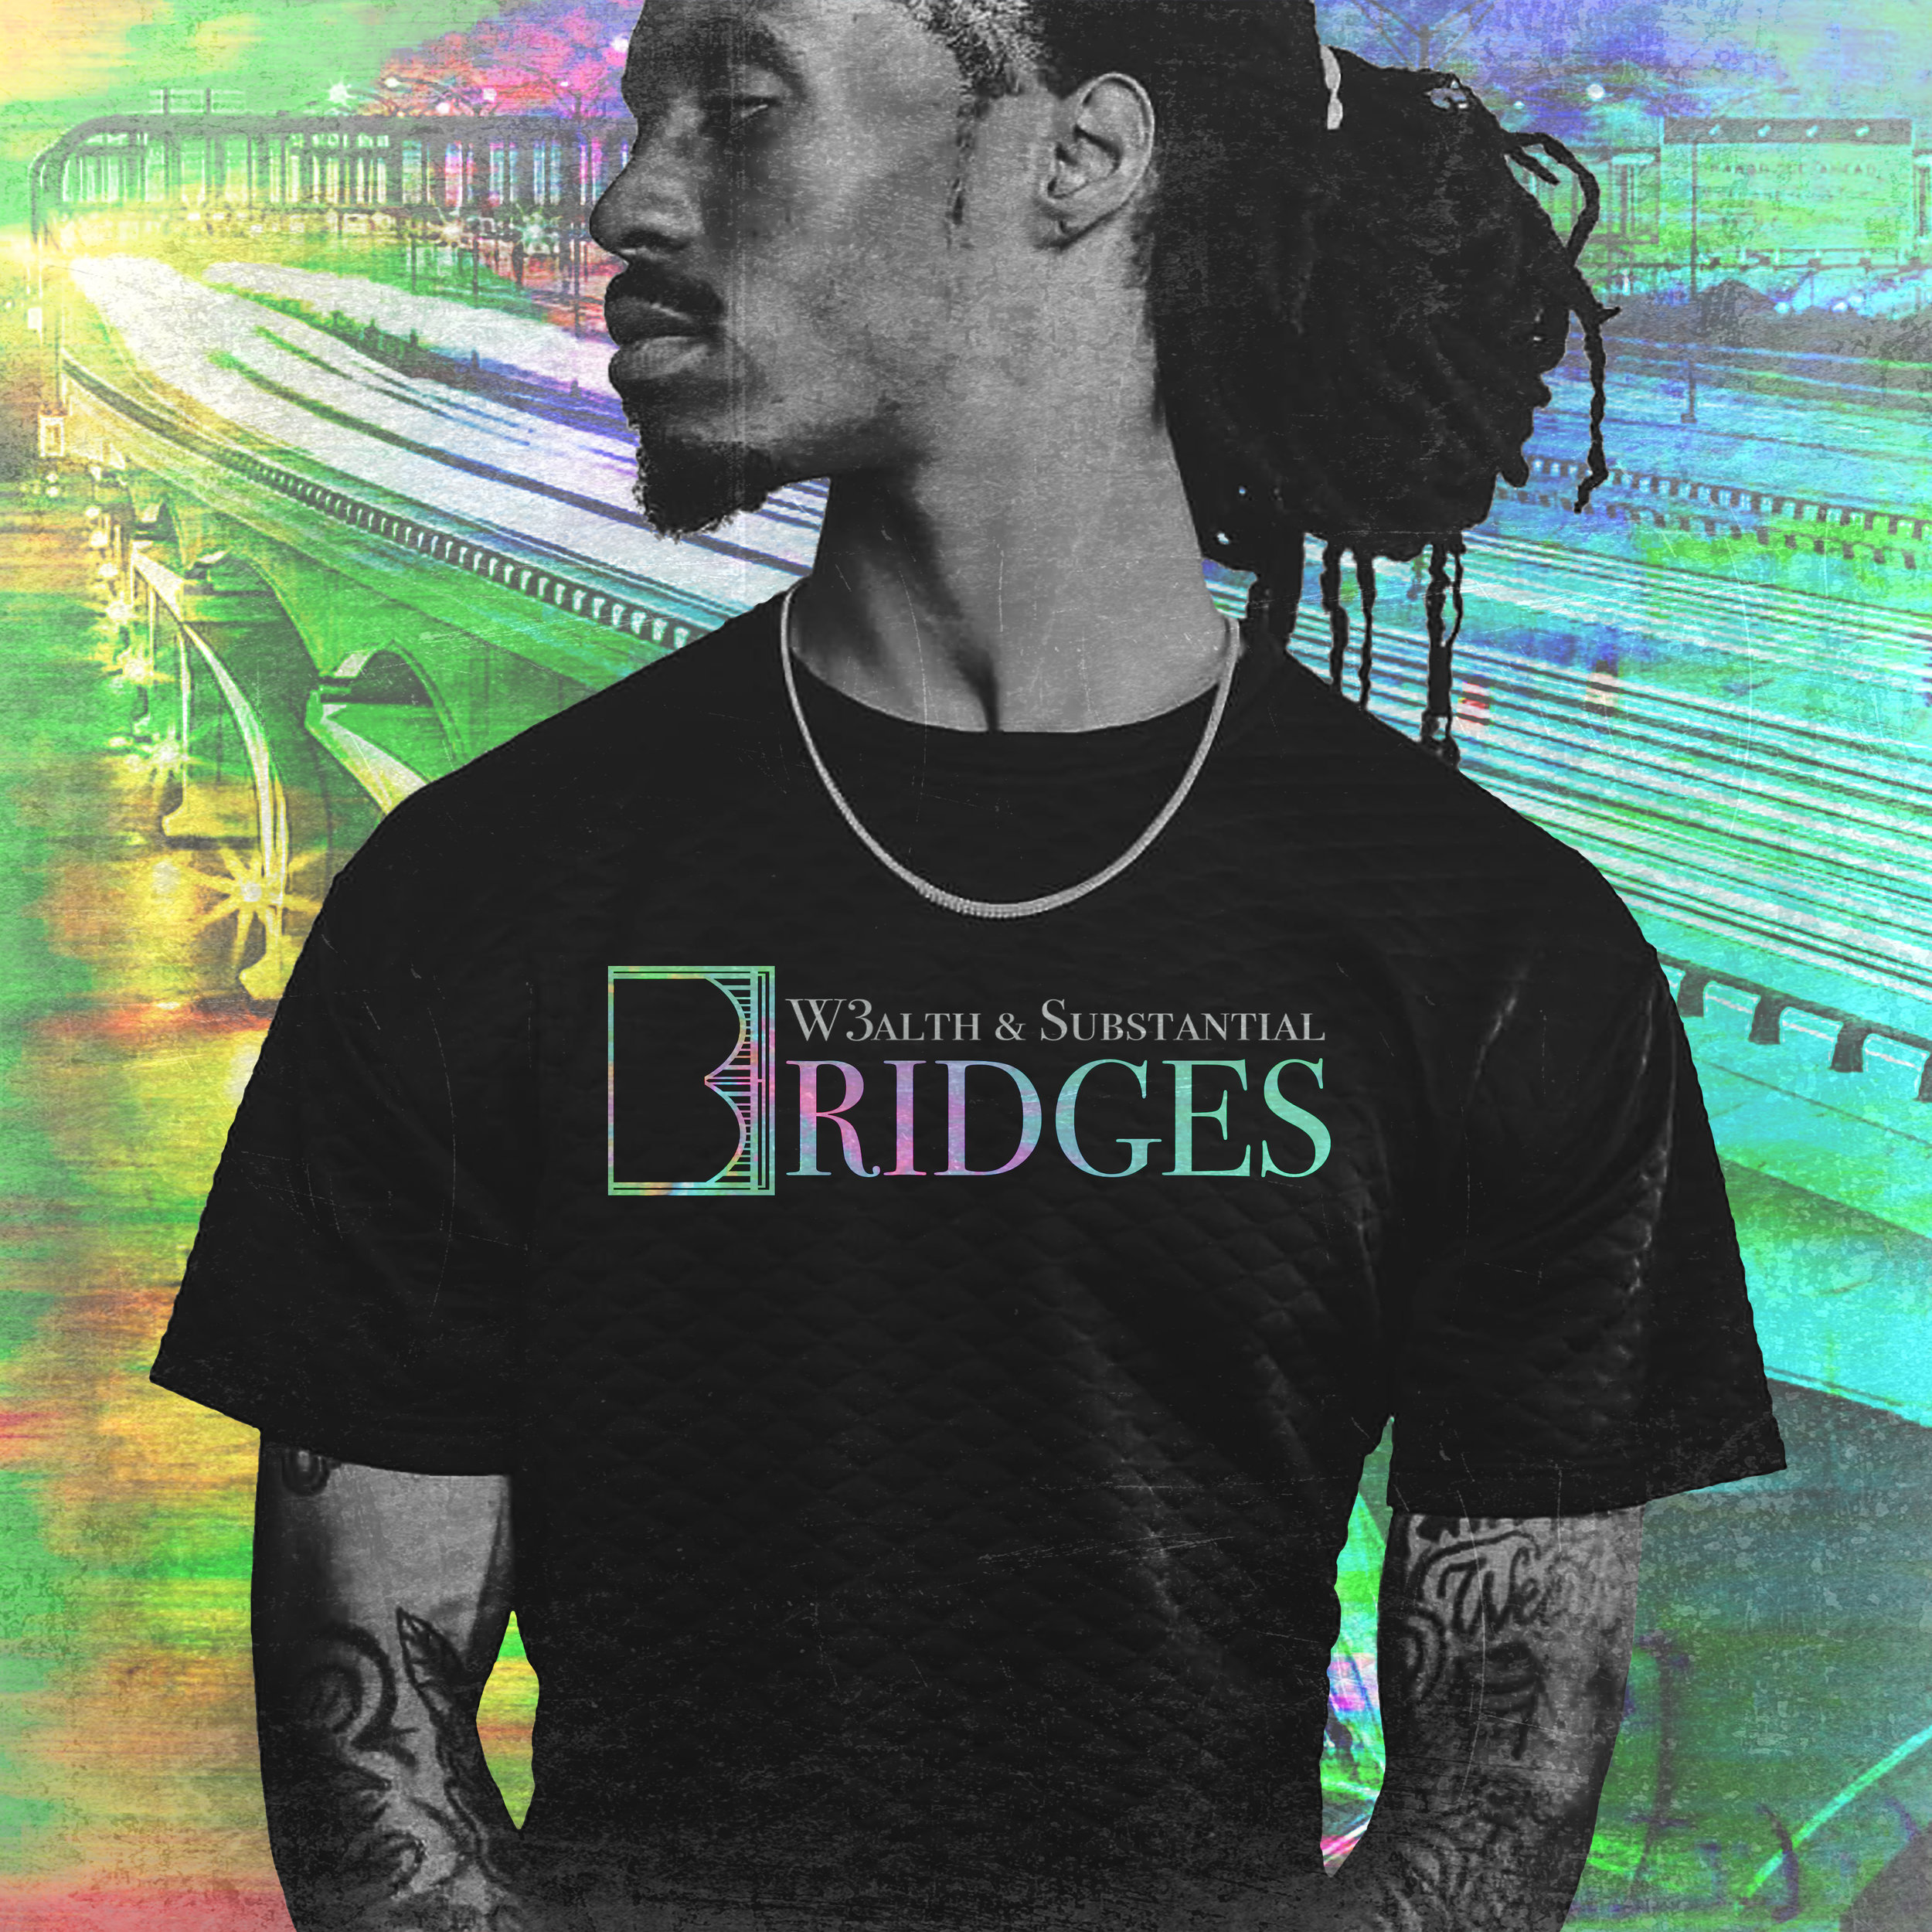 Bridges-Cover.jpg